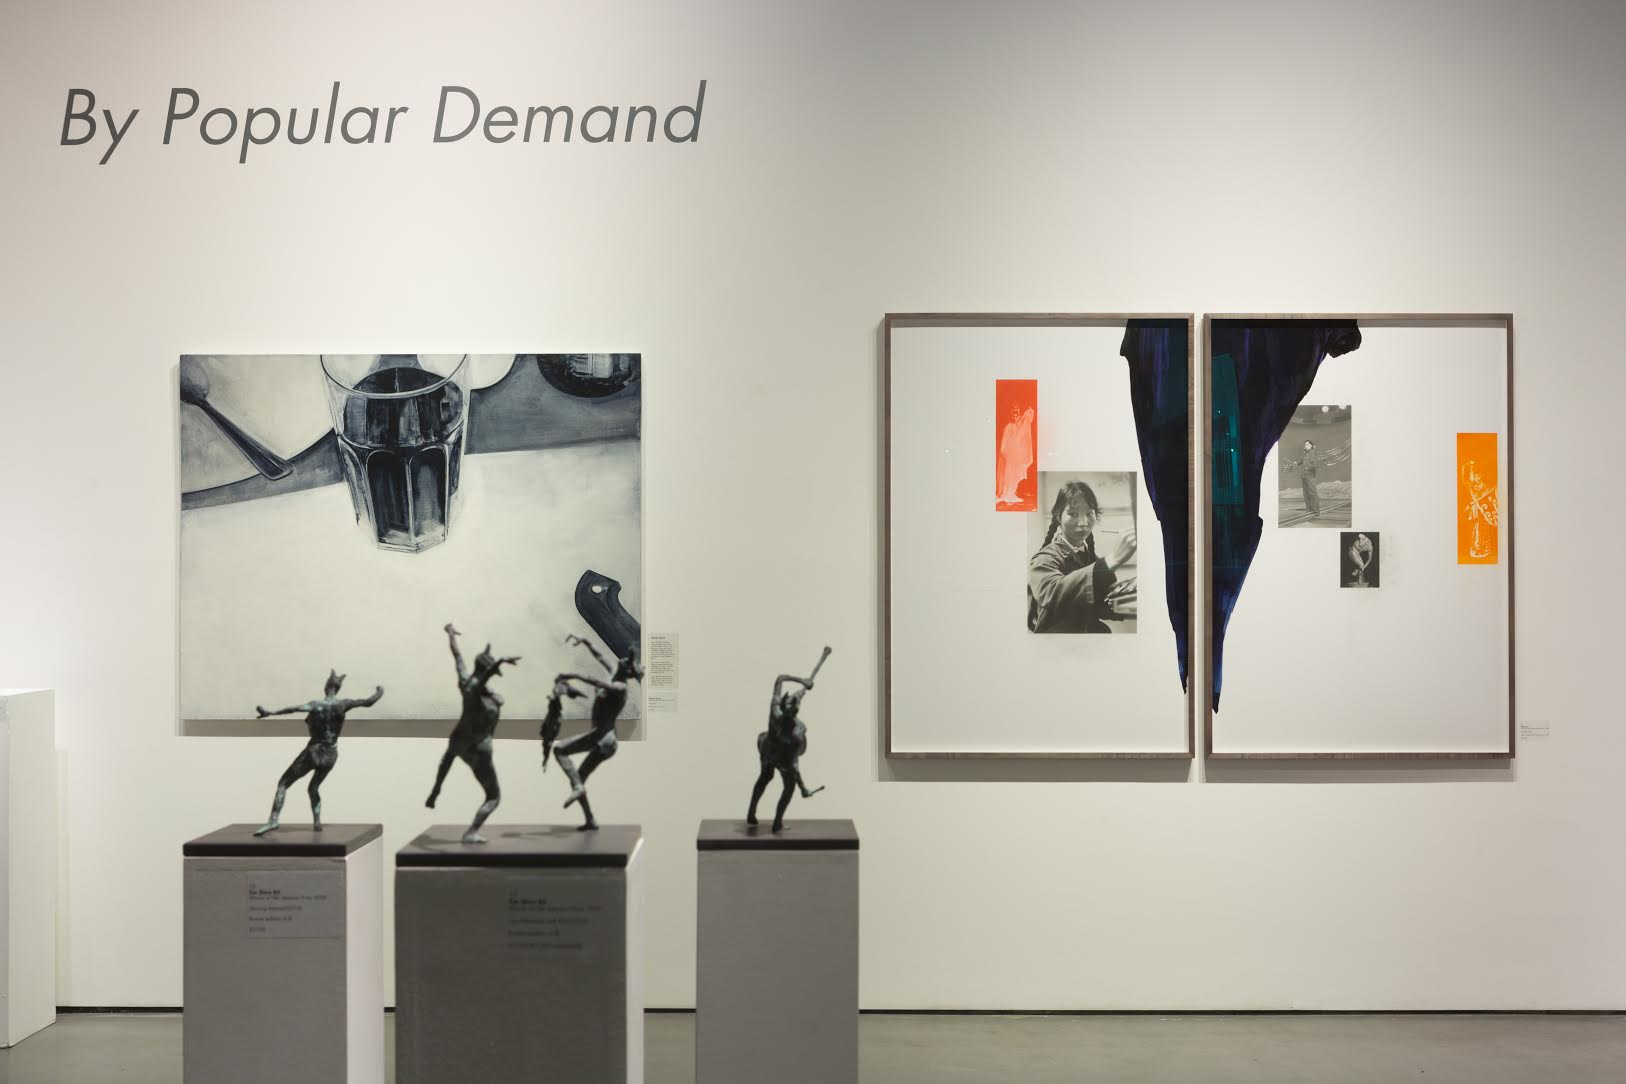 Installation shot at 'By Popular Demand', Mall Galleries, London (background left: 'Flux' by Nicholas McLeod; background right: 'Performer' by Aishan Yu; foreground: 'Two Maenads with Bird', 'Maenad with Drum' and 'Dancing Maenad' by Tim Shaw RA)